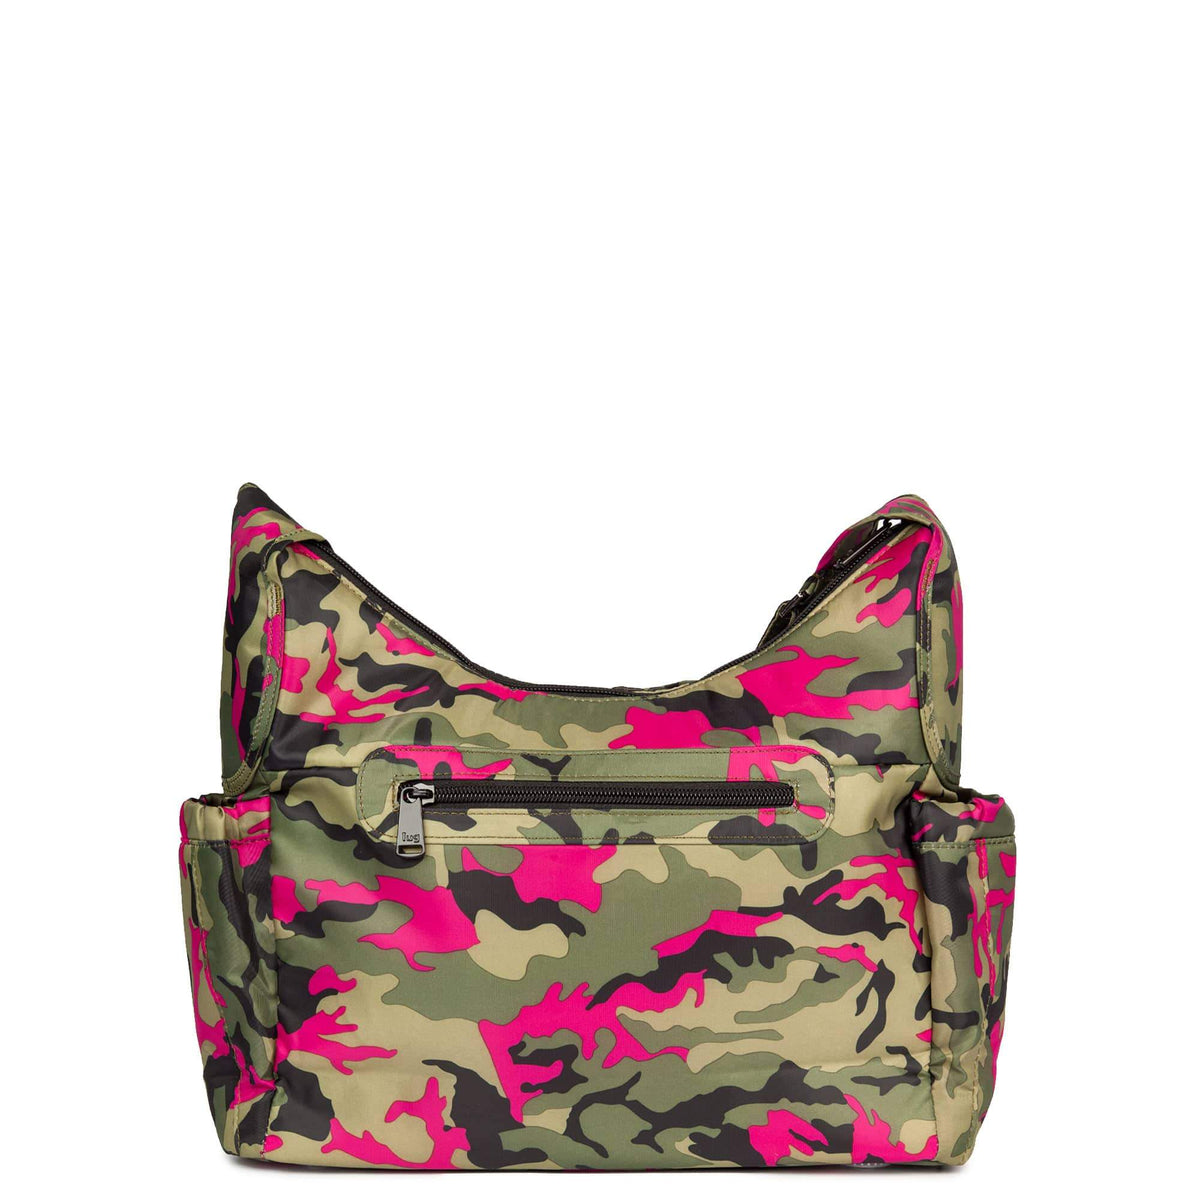 Camper 3 Shoulder Bag